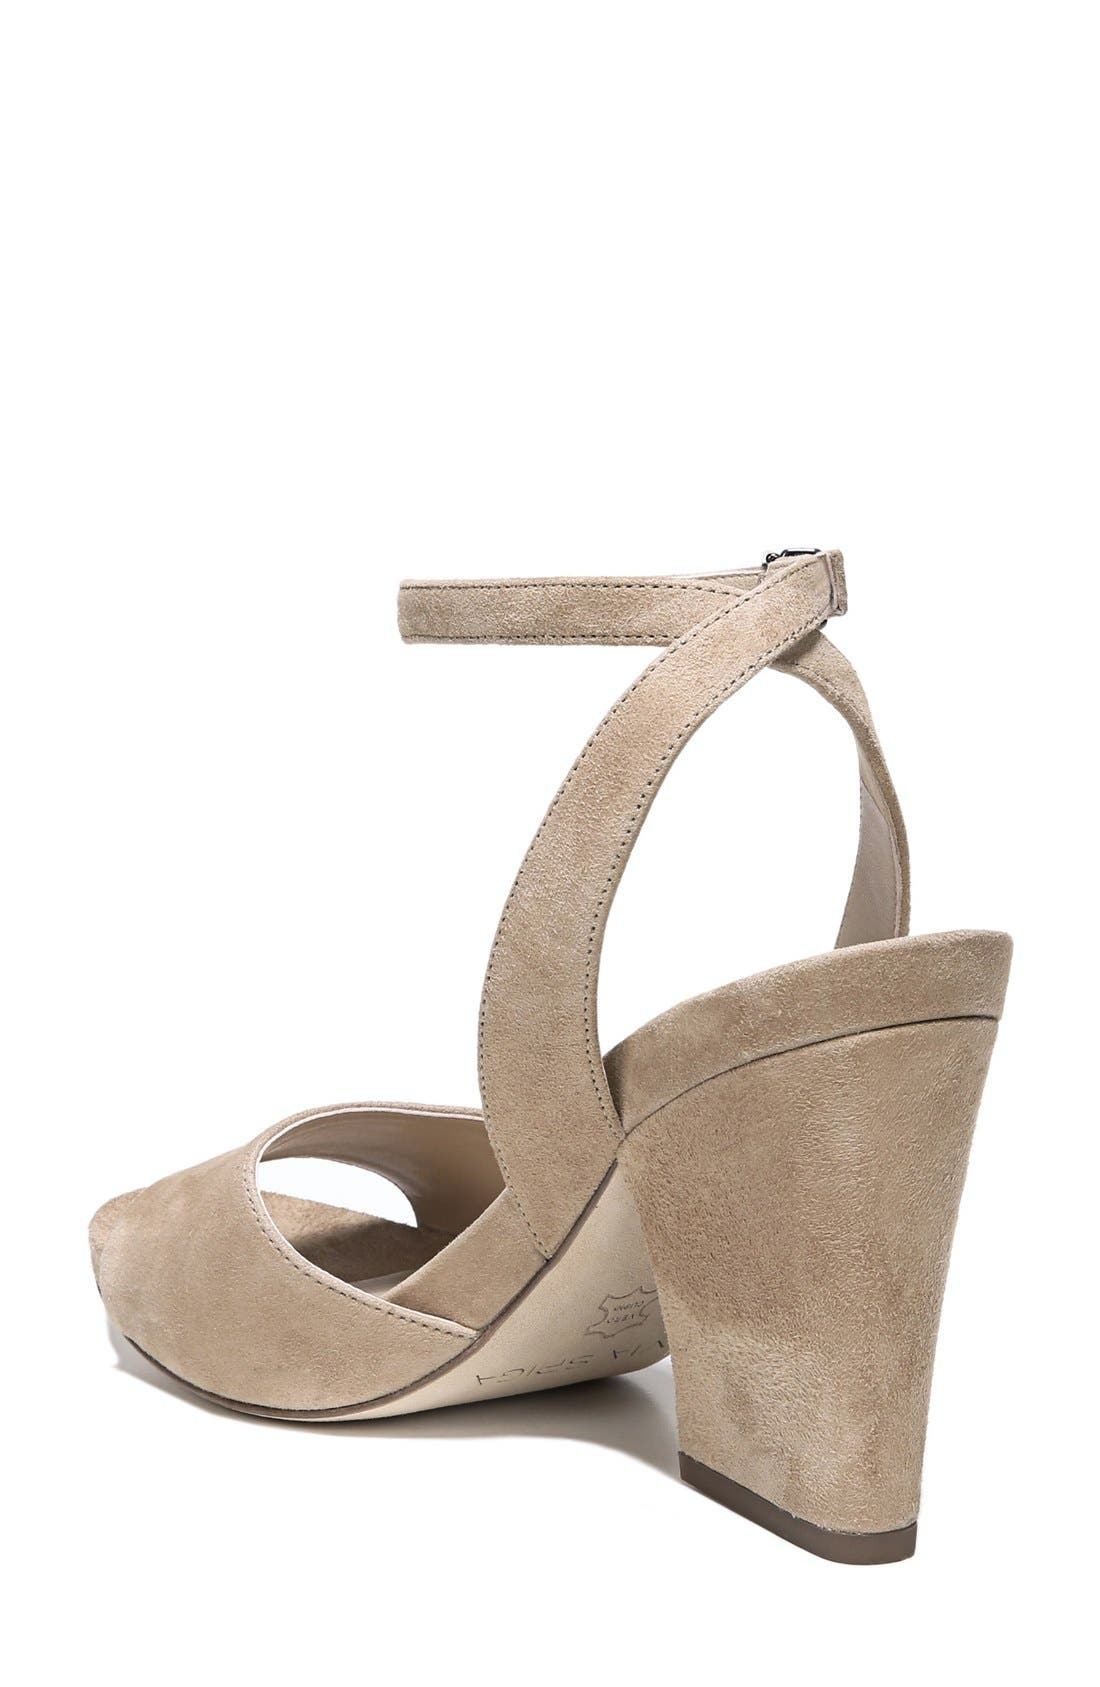 'Piper' Ankle Strap Sandal,                             Alternate thumbnail 2, color,                             Light Camel Suede